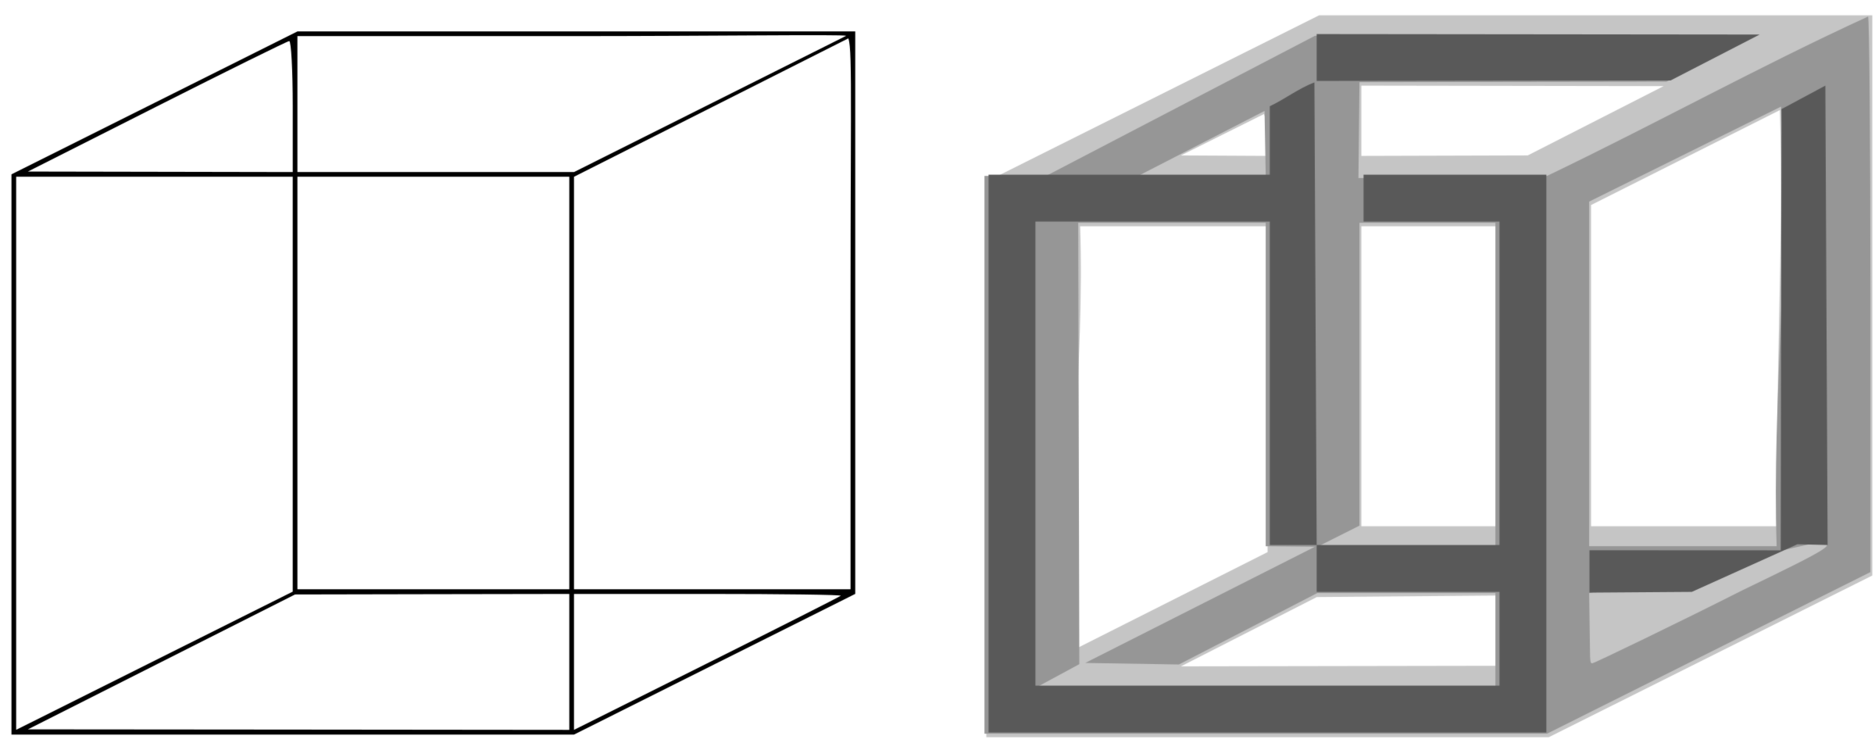 Vector outline cube. Penrose triangle necker impossible